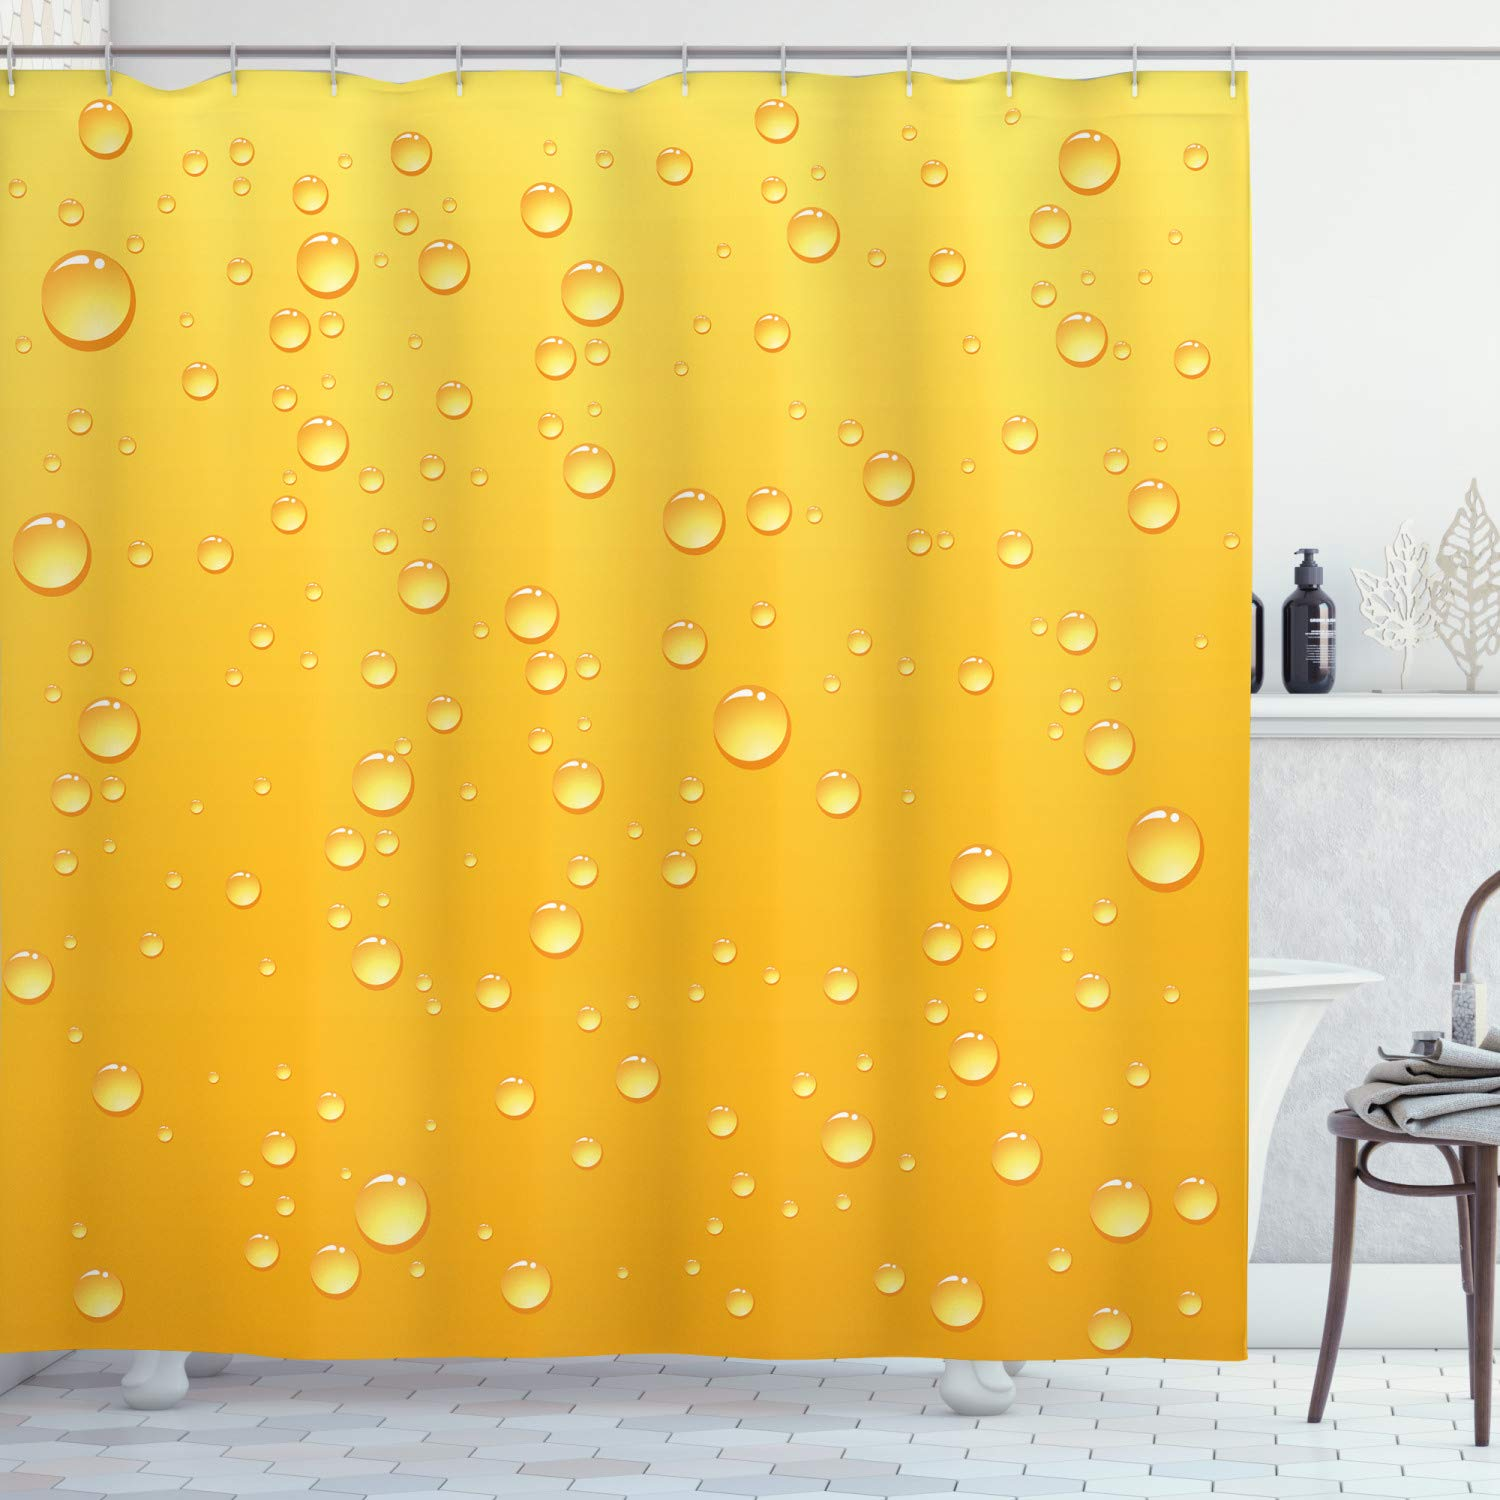 """Ambesonne Yellow Shower Curtain, Yellow Ombre Background Like Beer in a Glass with Water Drops Graphic Artwork Prints, Cloth Fabric Bathroom Decor Set with Hooks, 84"""" Long Extra, Yellow"""